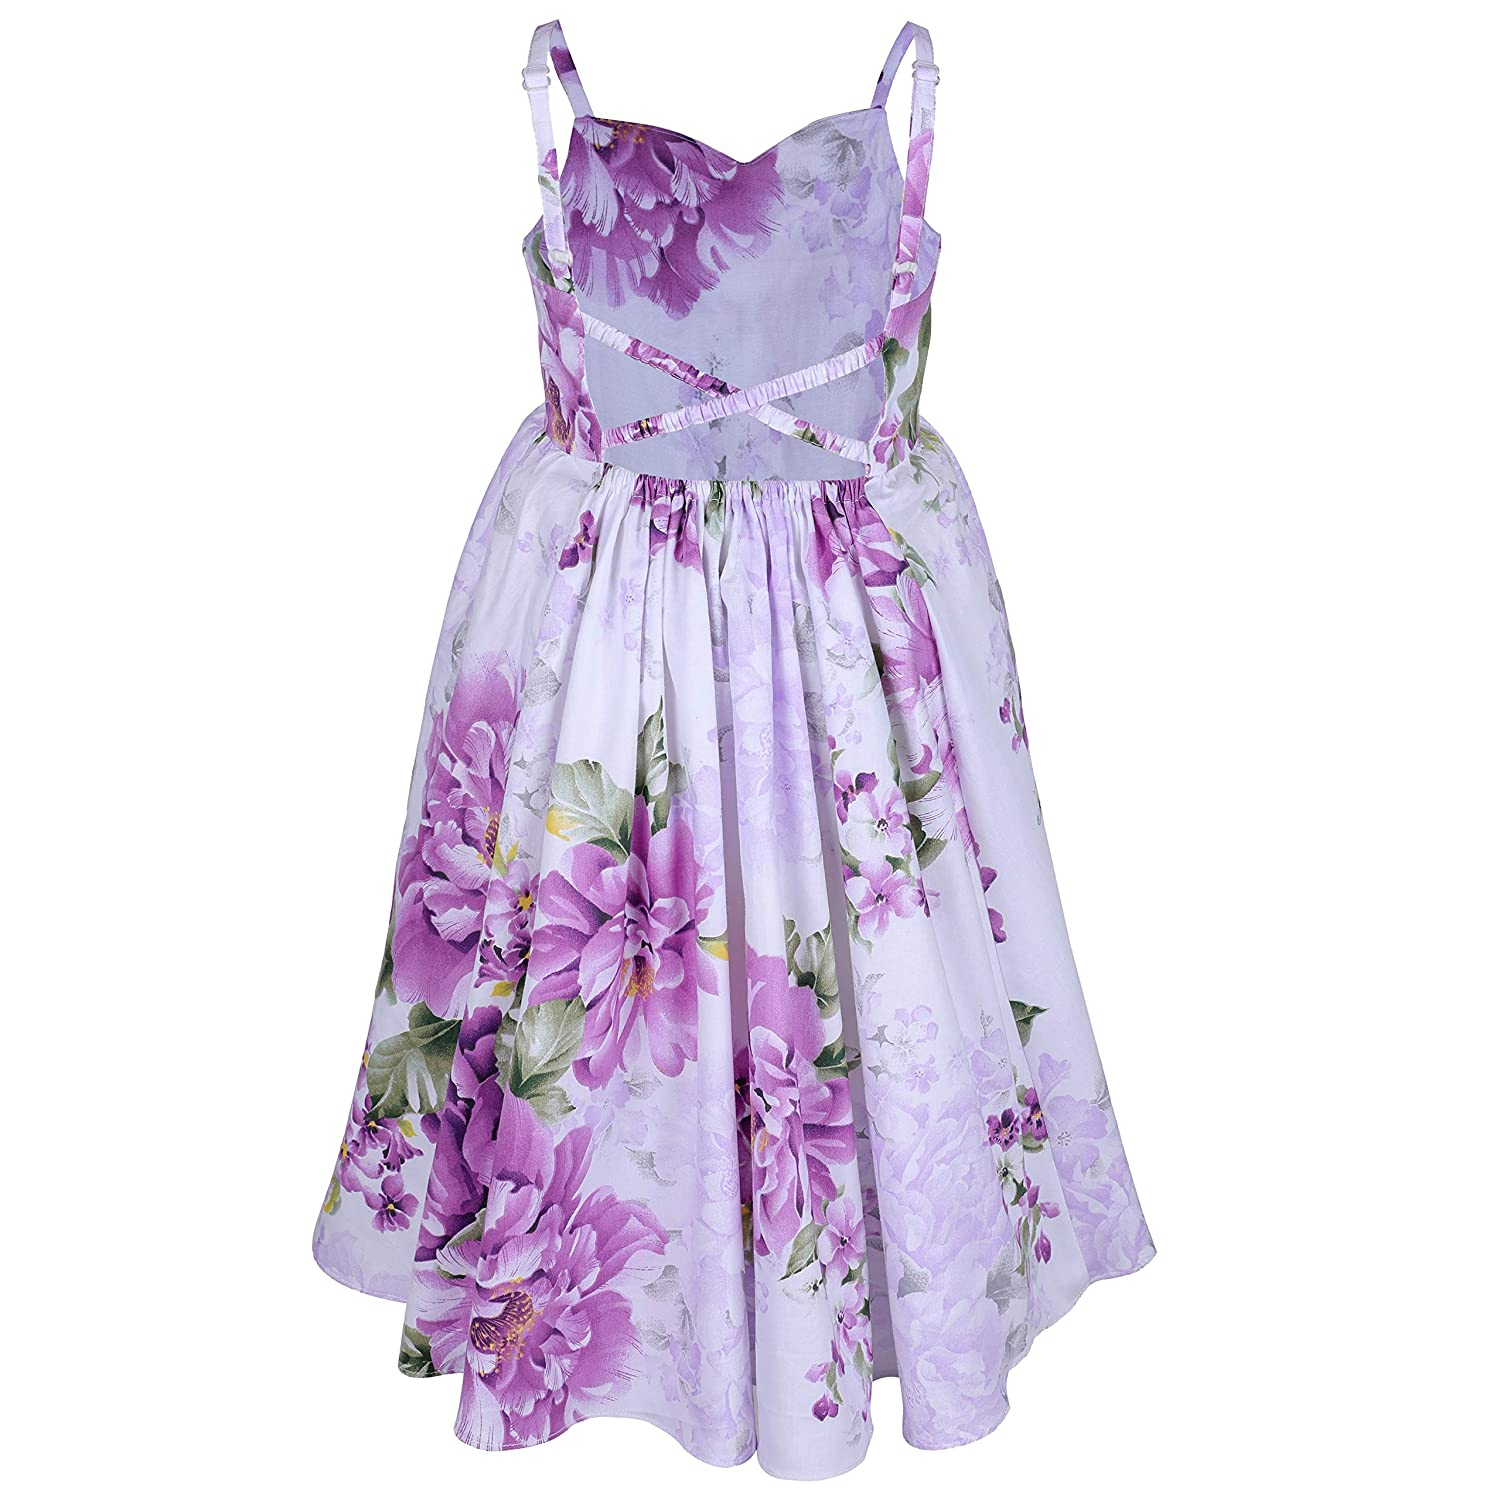 Flofallzique Purple Vintage Floral Backless Party Girls Dress for 1-10 Years Old